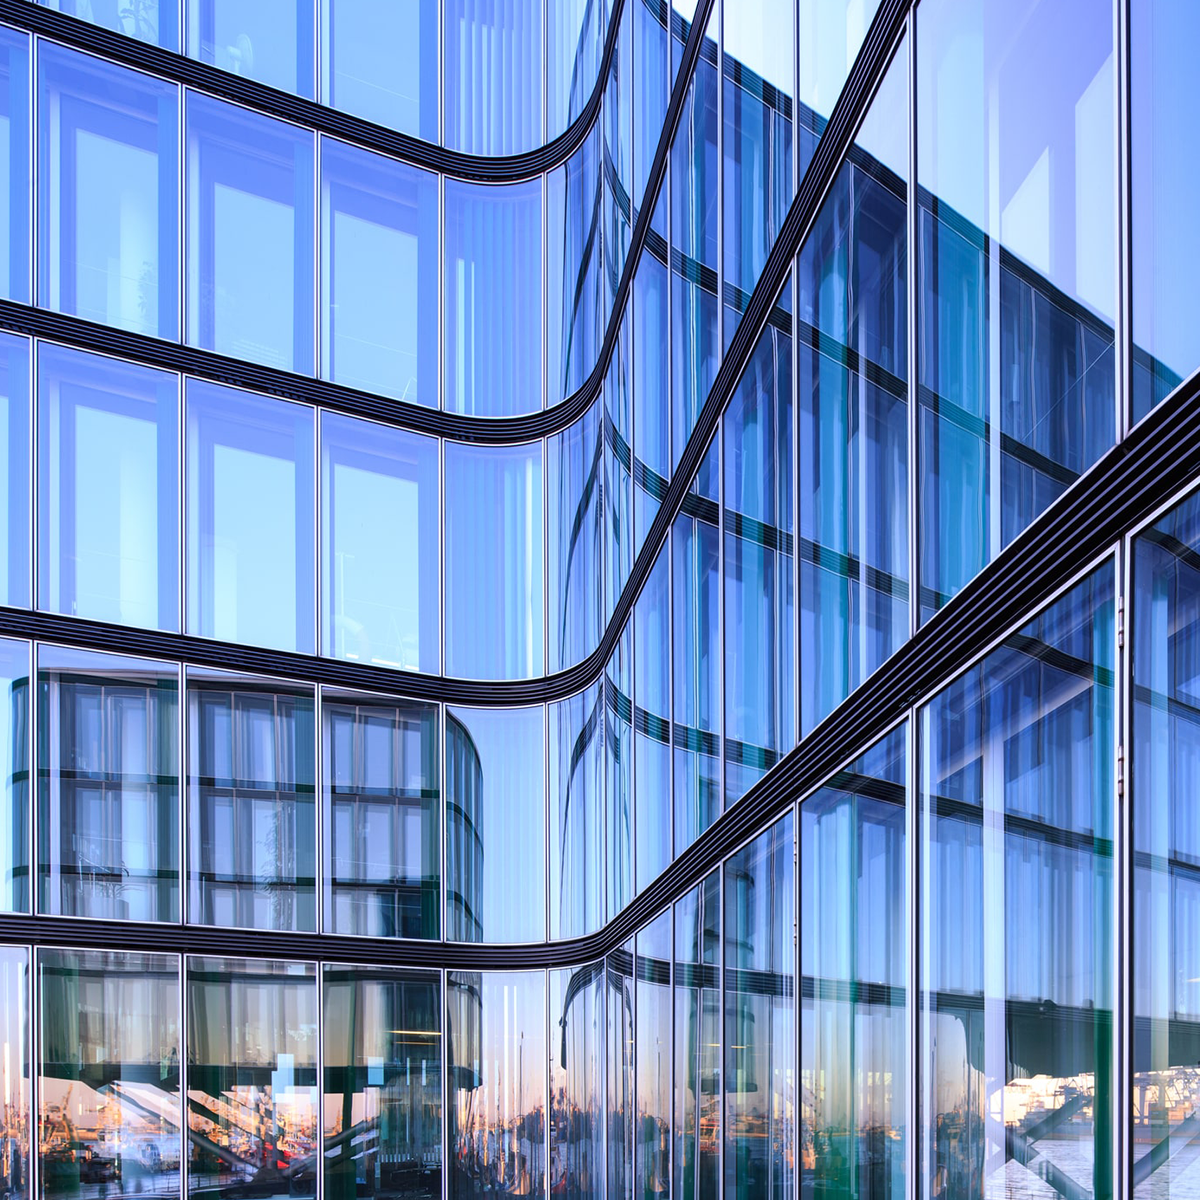 Reflection of the Hamburg harbor i a glass facade of a modern office building.